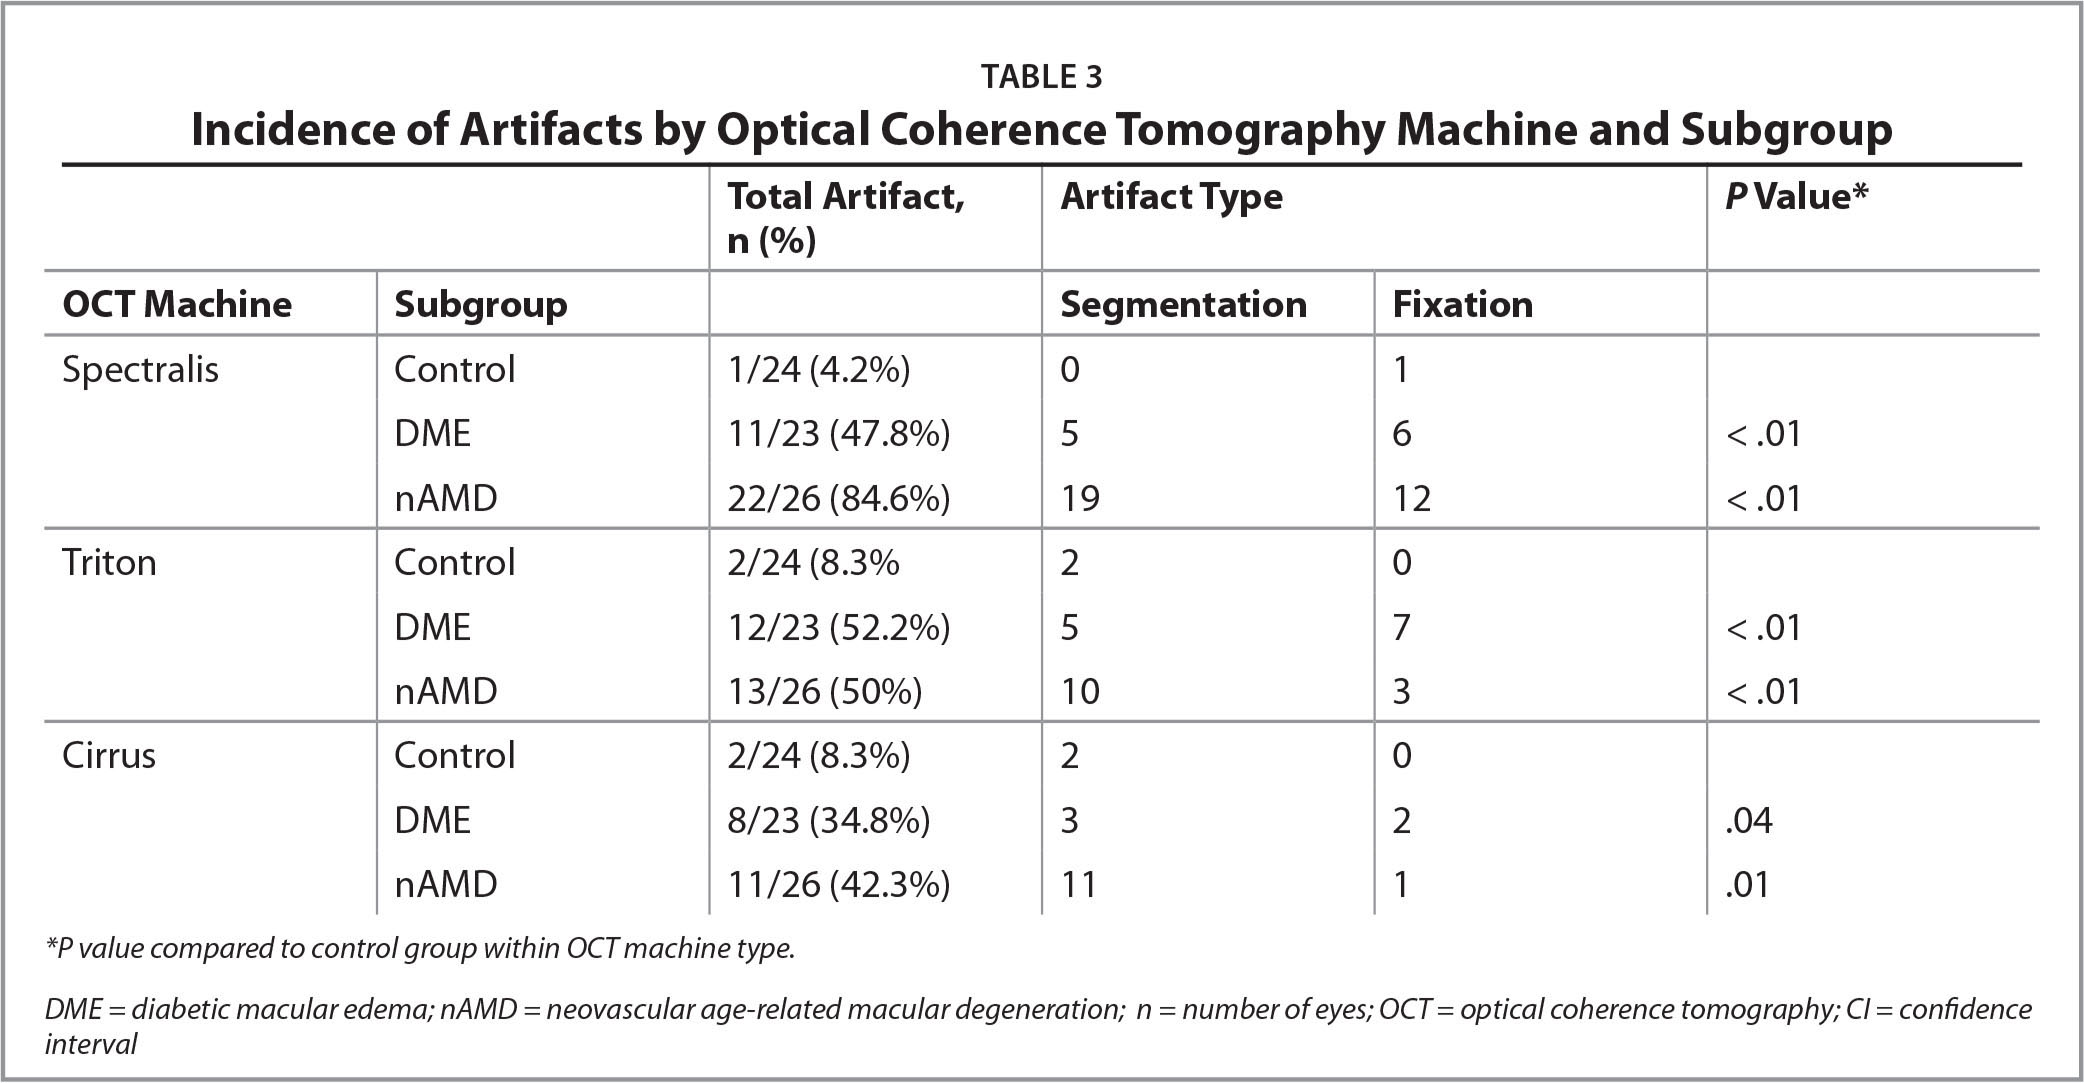 Incidence of Artifacts by Optical Coherence Tomography Machine and Subgroup